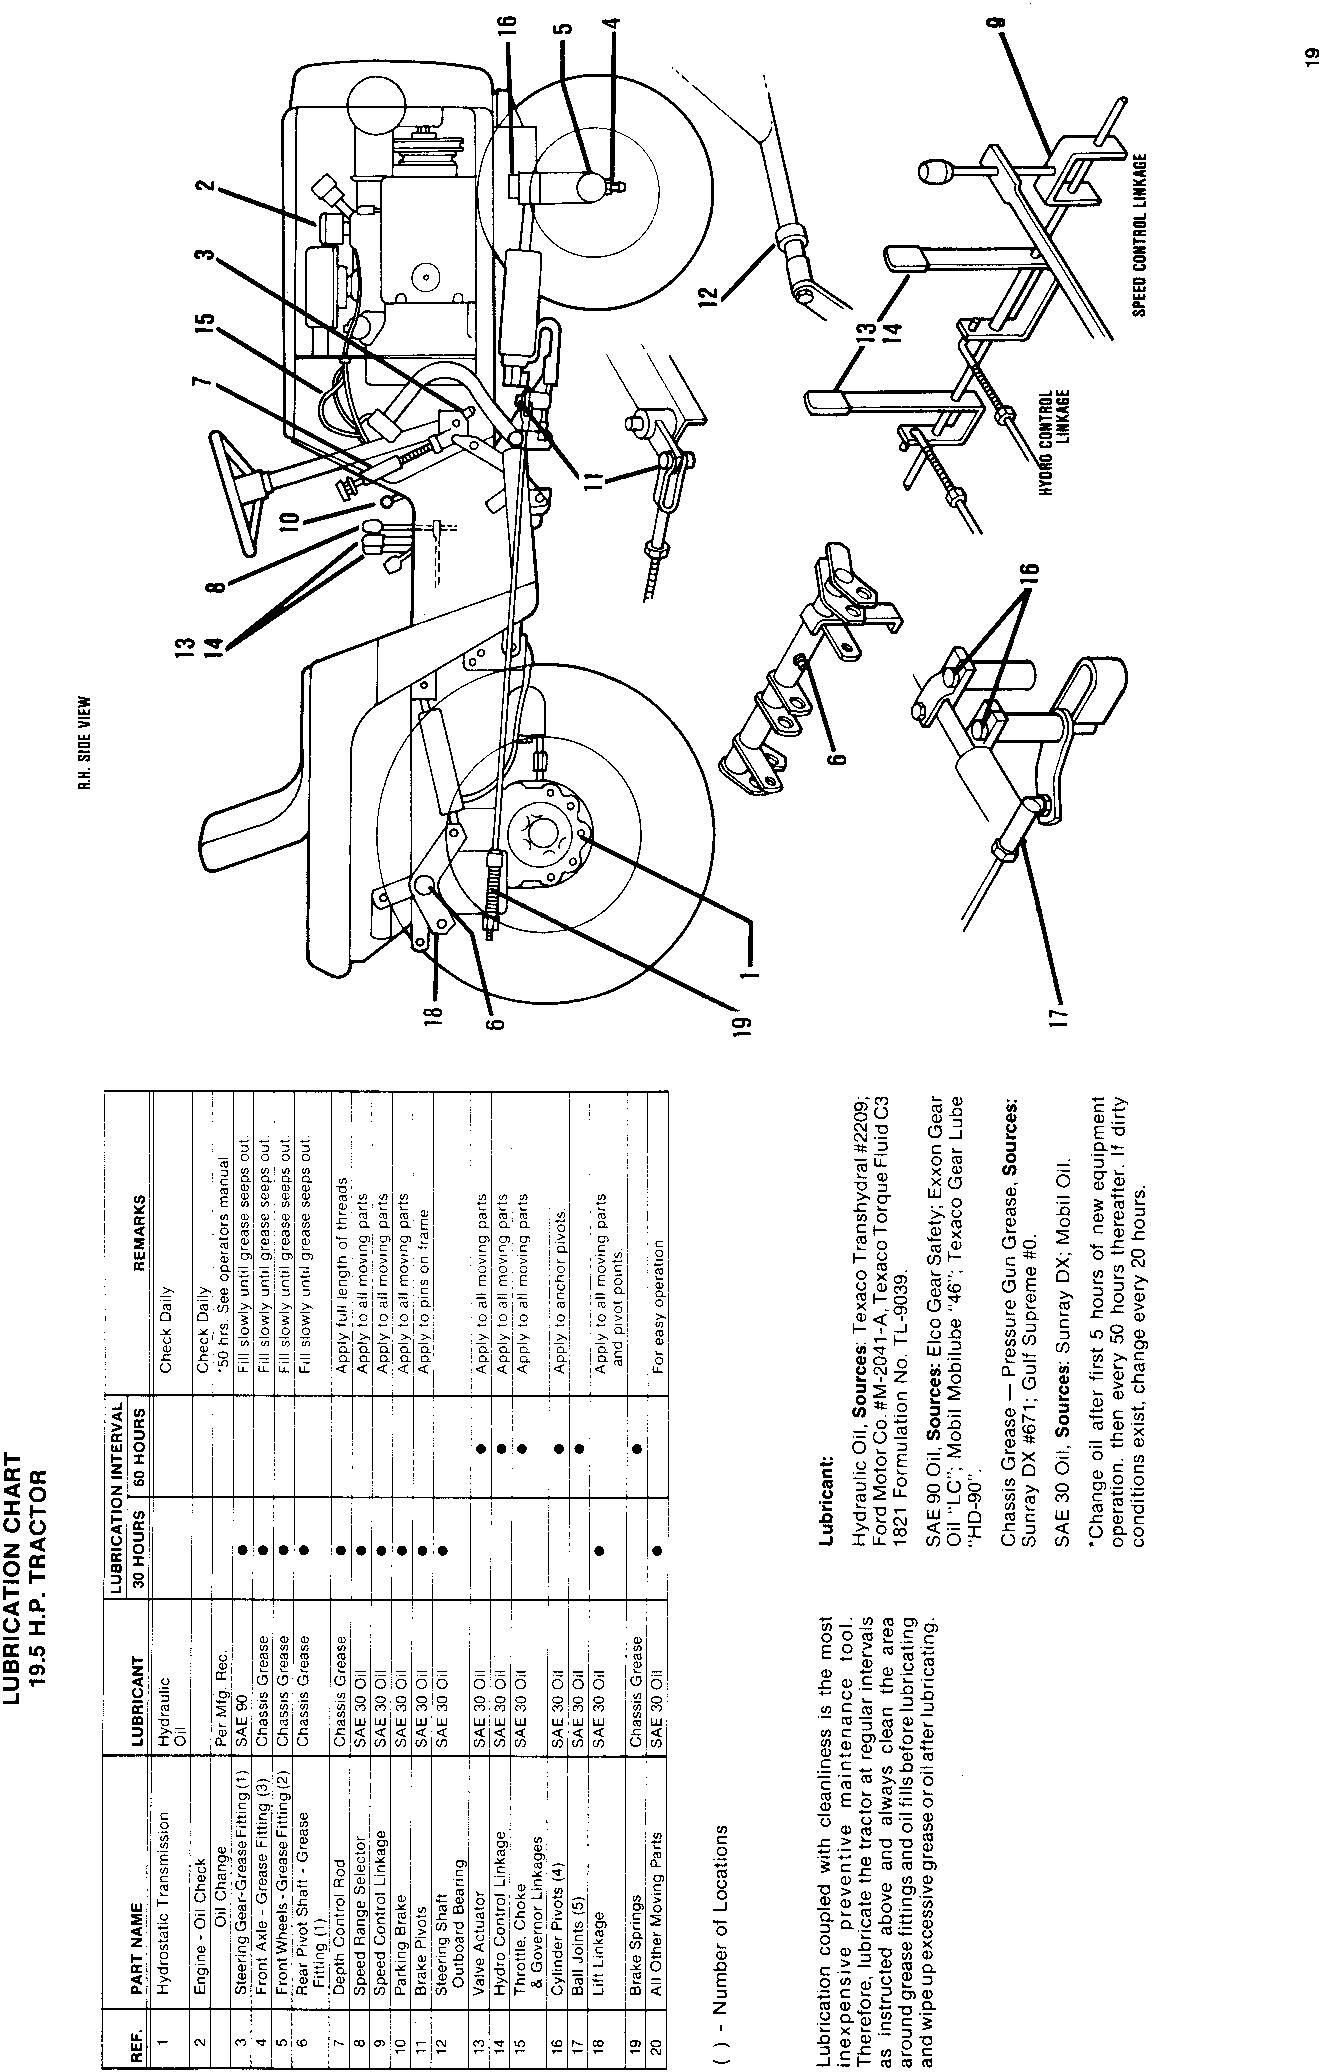 Ford 100, 120, 125, 145, 165, 195 Lawn & Garden Tractor Service Manual - 2